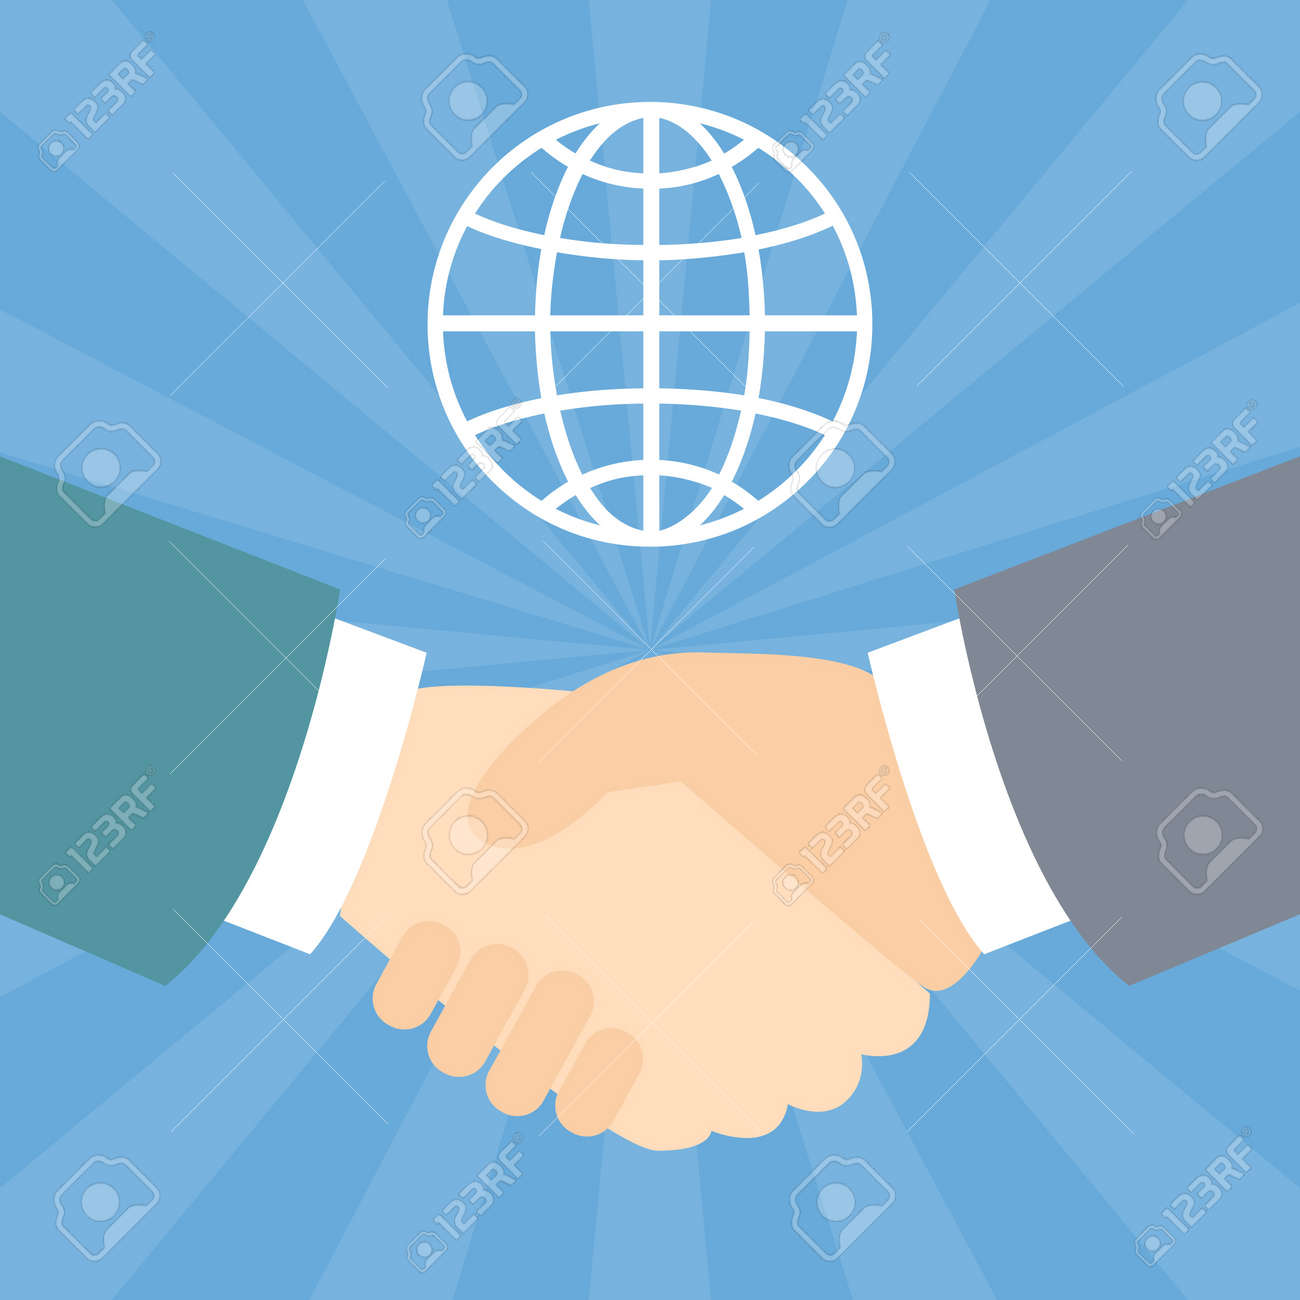 Shook hands with global - 168556882